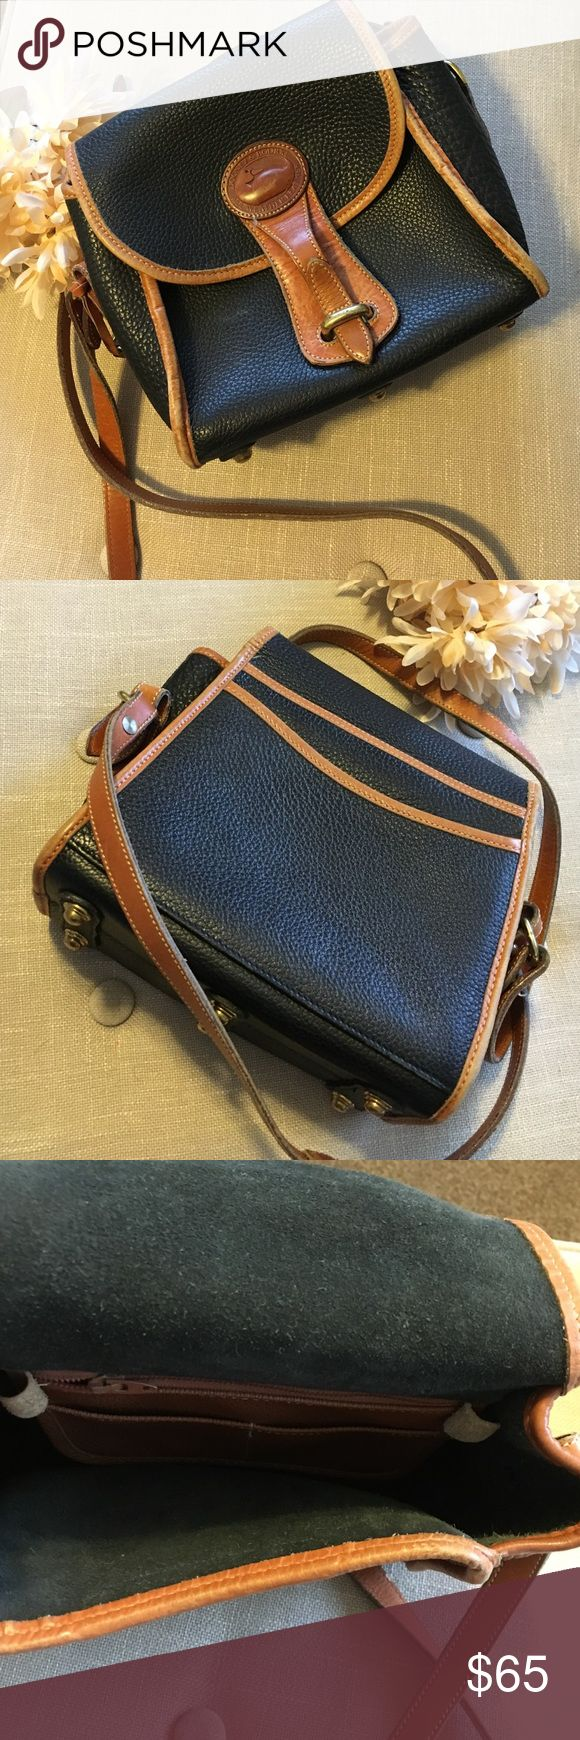 Vintage Dooney & Bourke All Weather Leather Bag This Vintage Dooney & Bourke All Weather Leather Bag is preloved but in good condition! Leather is worn and faded in some areas but it mostly just adds to its vintage charm! Having a hard time letting her go, such a reliable quality bag! Dooney & Bourke Bags Crossbody Bags